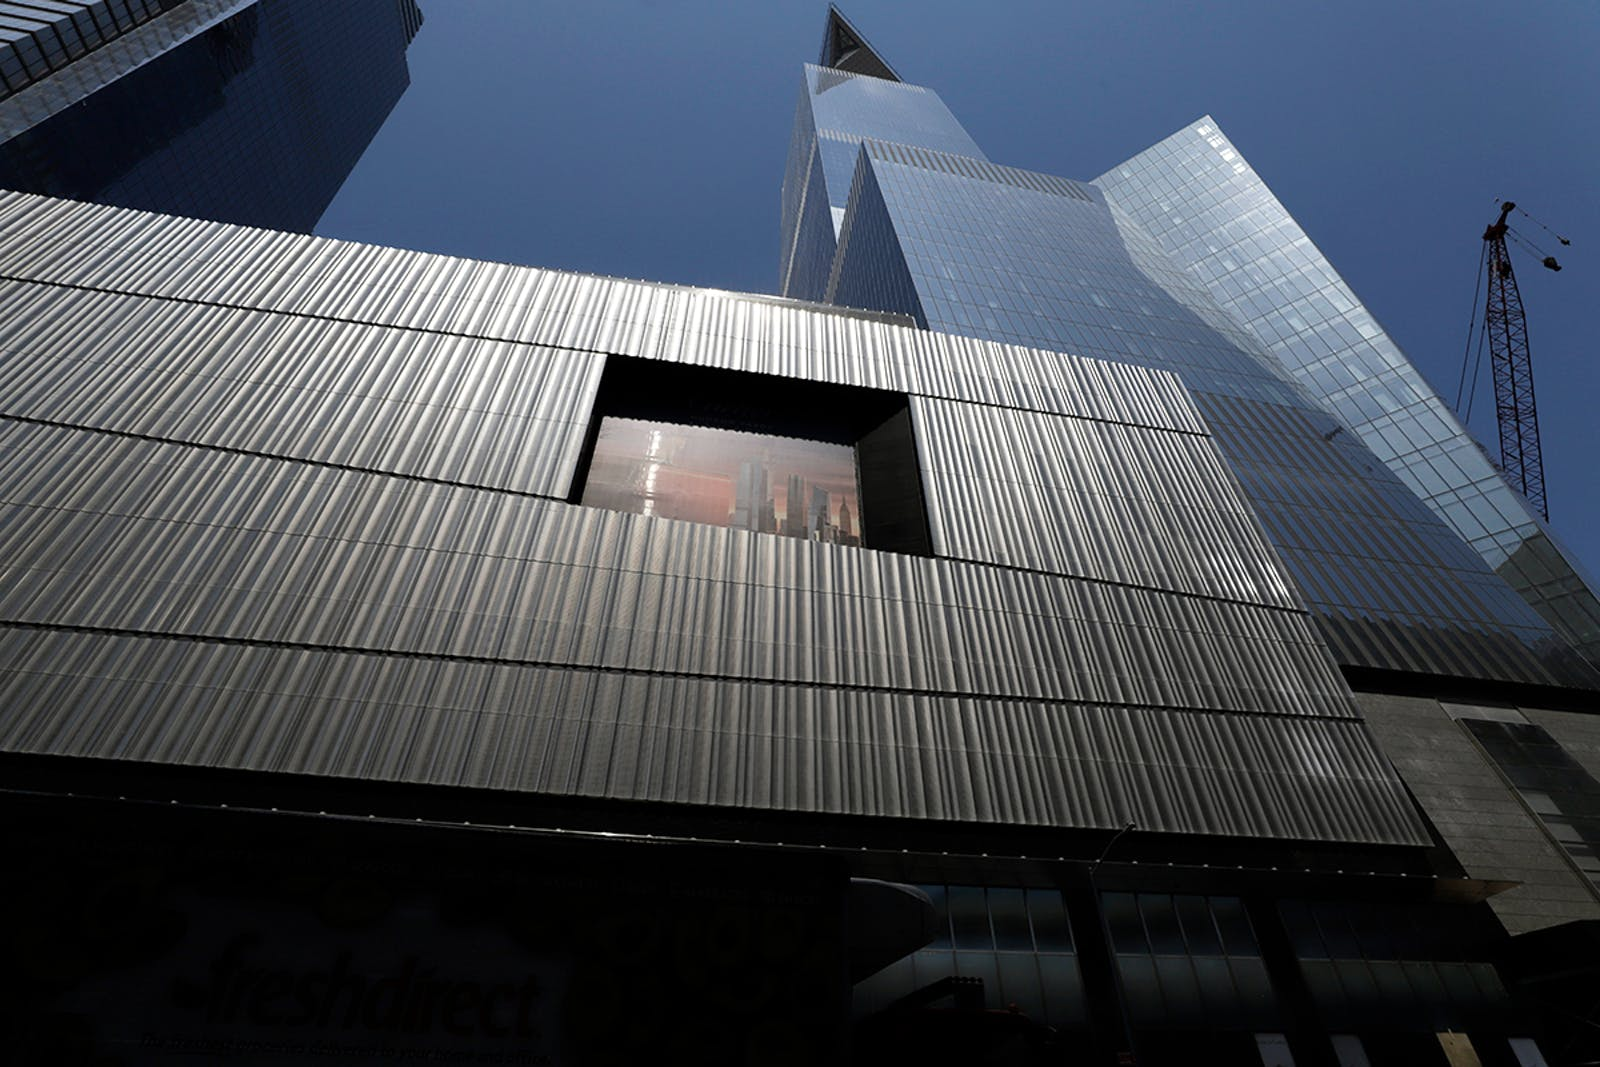 This is the Neiman-Marcus facade, lower left, of the Hudson Yards development in New York City on July 28, 2019. (AP Photo/Gene J. Puskar)